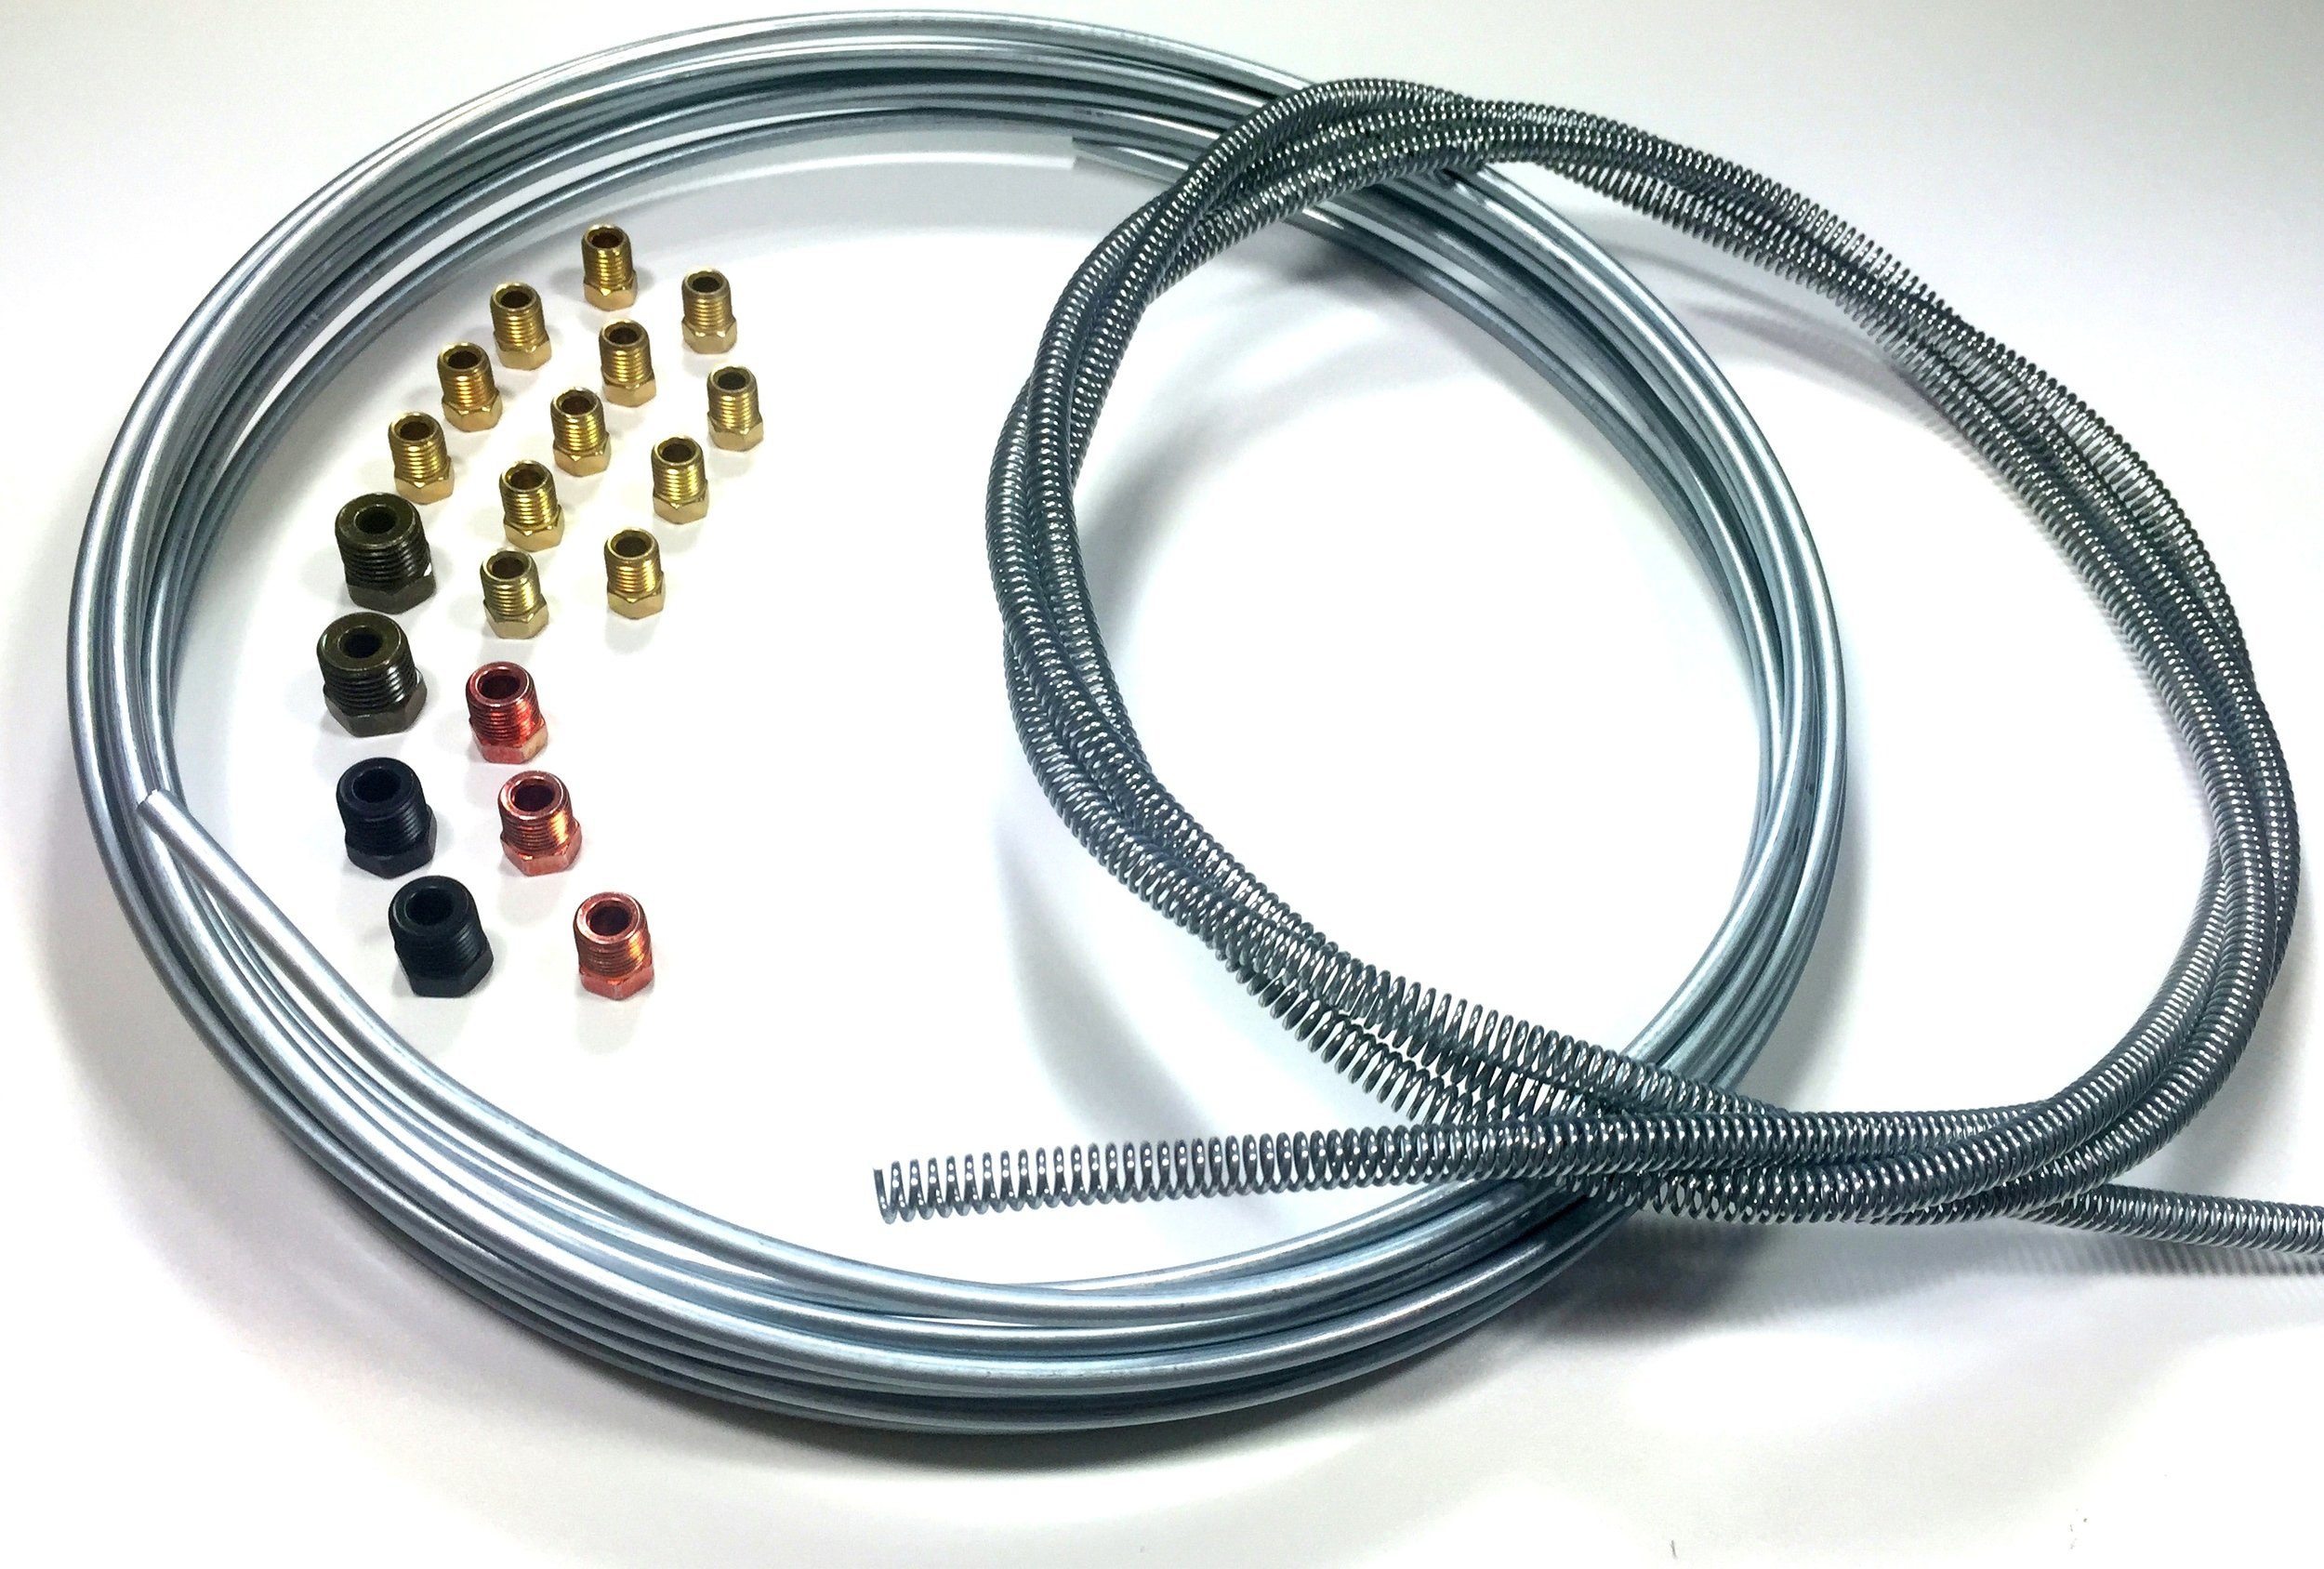 25 ft of 3/16 Brake Line Kit - Tube/8 ft of Armor/Fittings